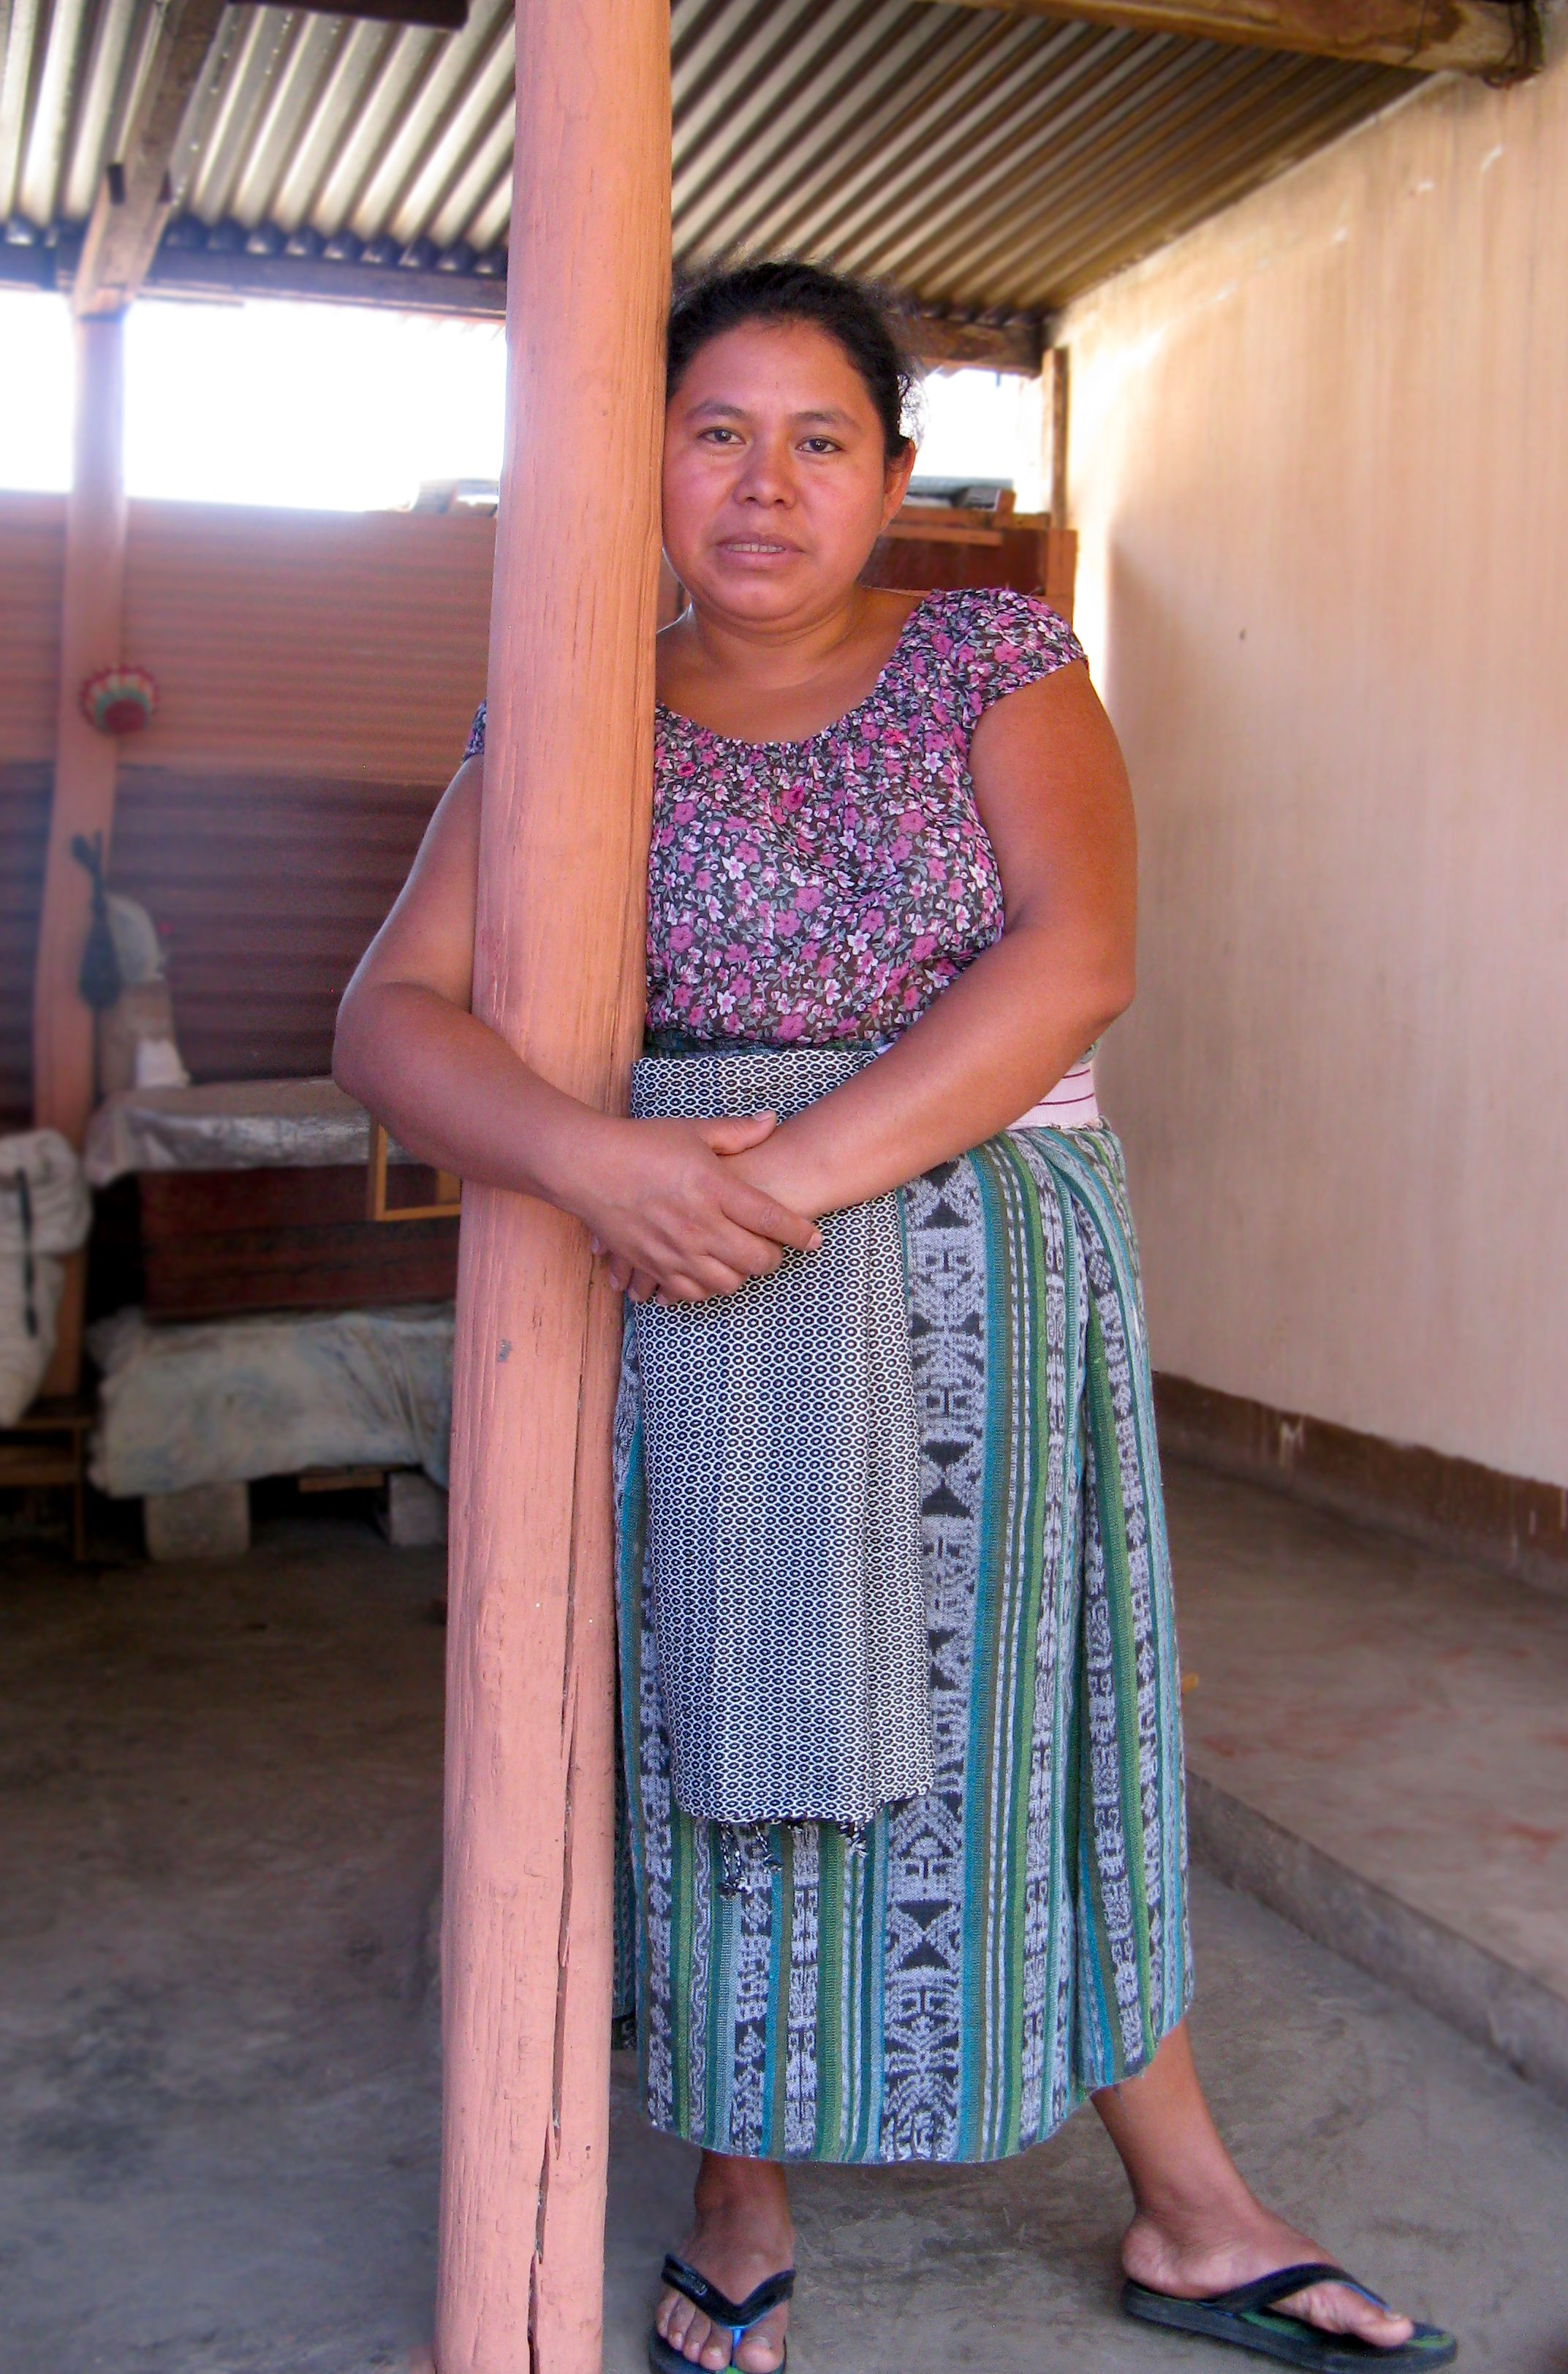 Mayan Master Backstrap Loom Weaver & Dyer Isabel Pérez Mendoza at her home leaning against a center pole